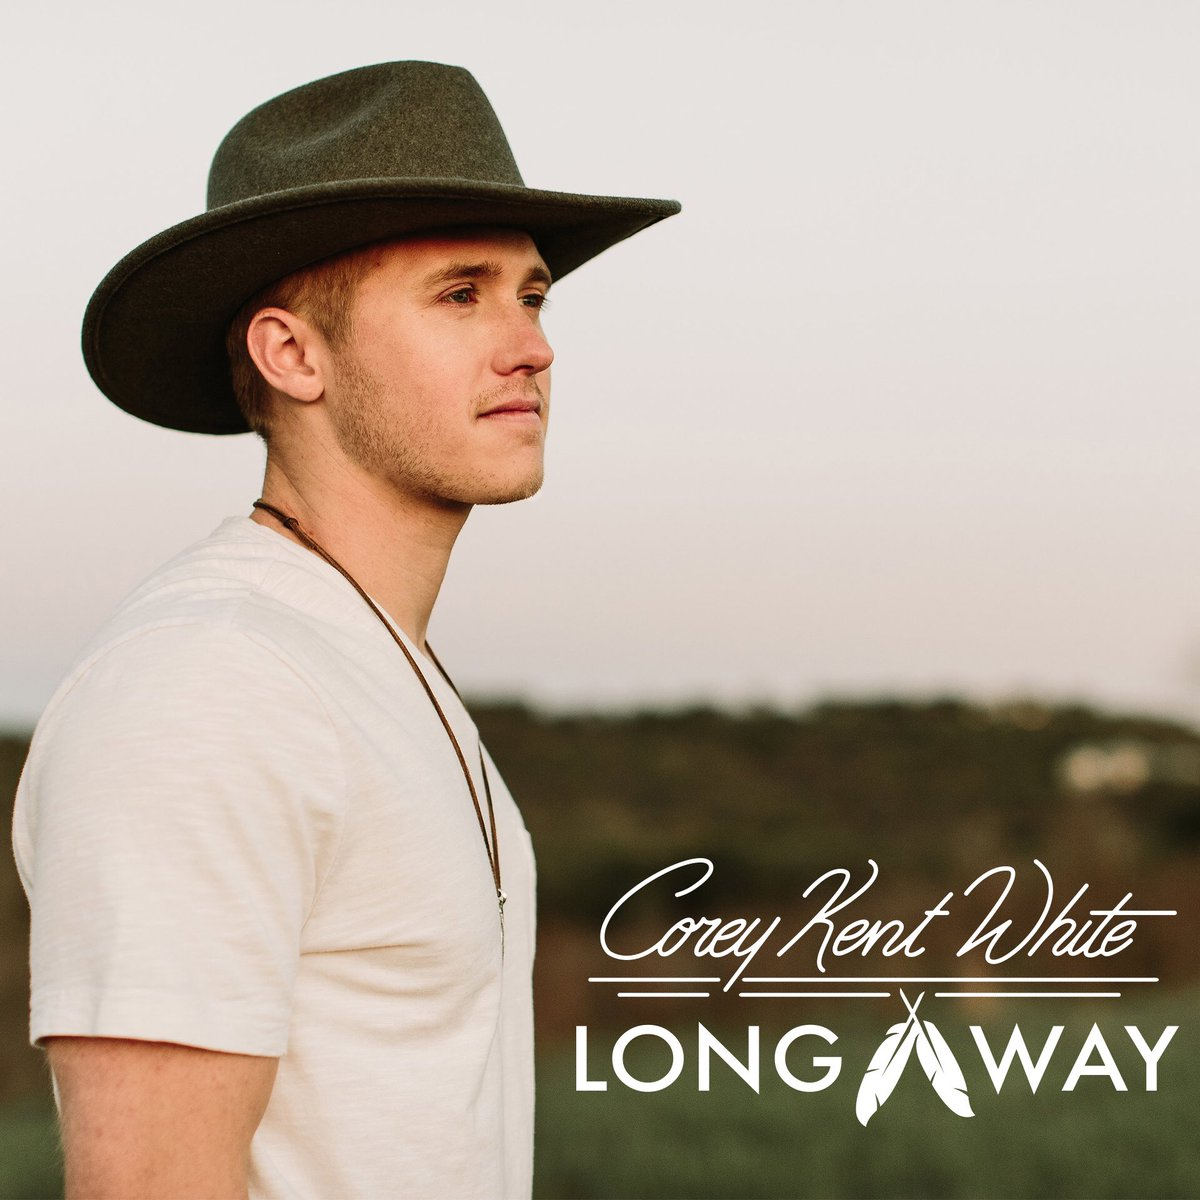 Folks, my new album Long Way is officially available on @itunes!   I hope y'all like it!  https://t.co/qcbP7I85OB https://t.co/rzO6haAGgk